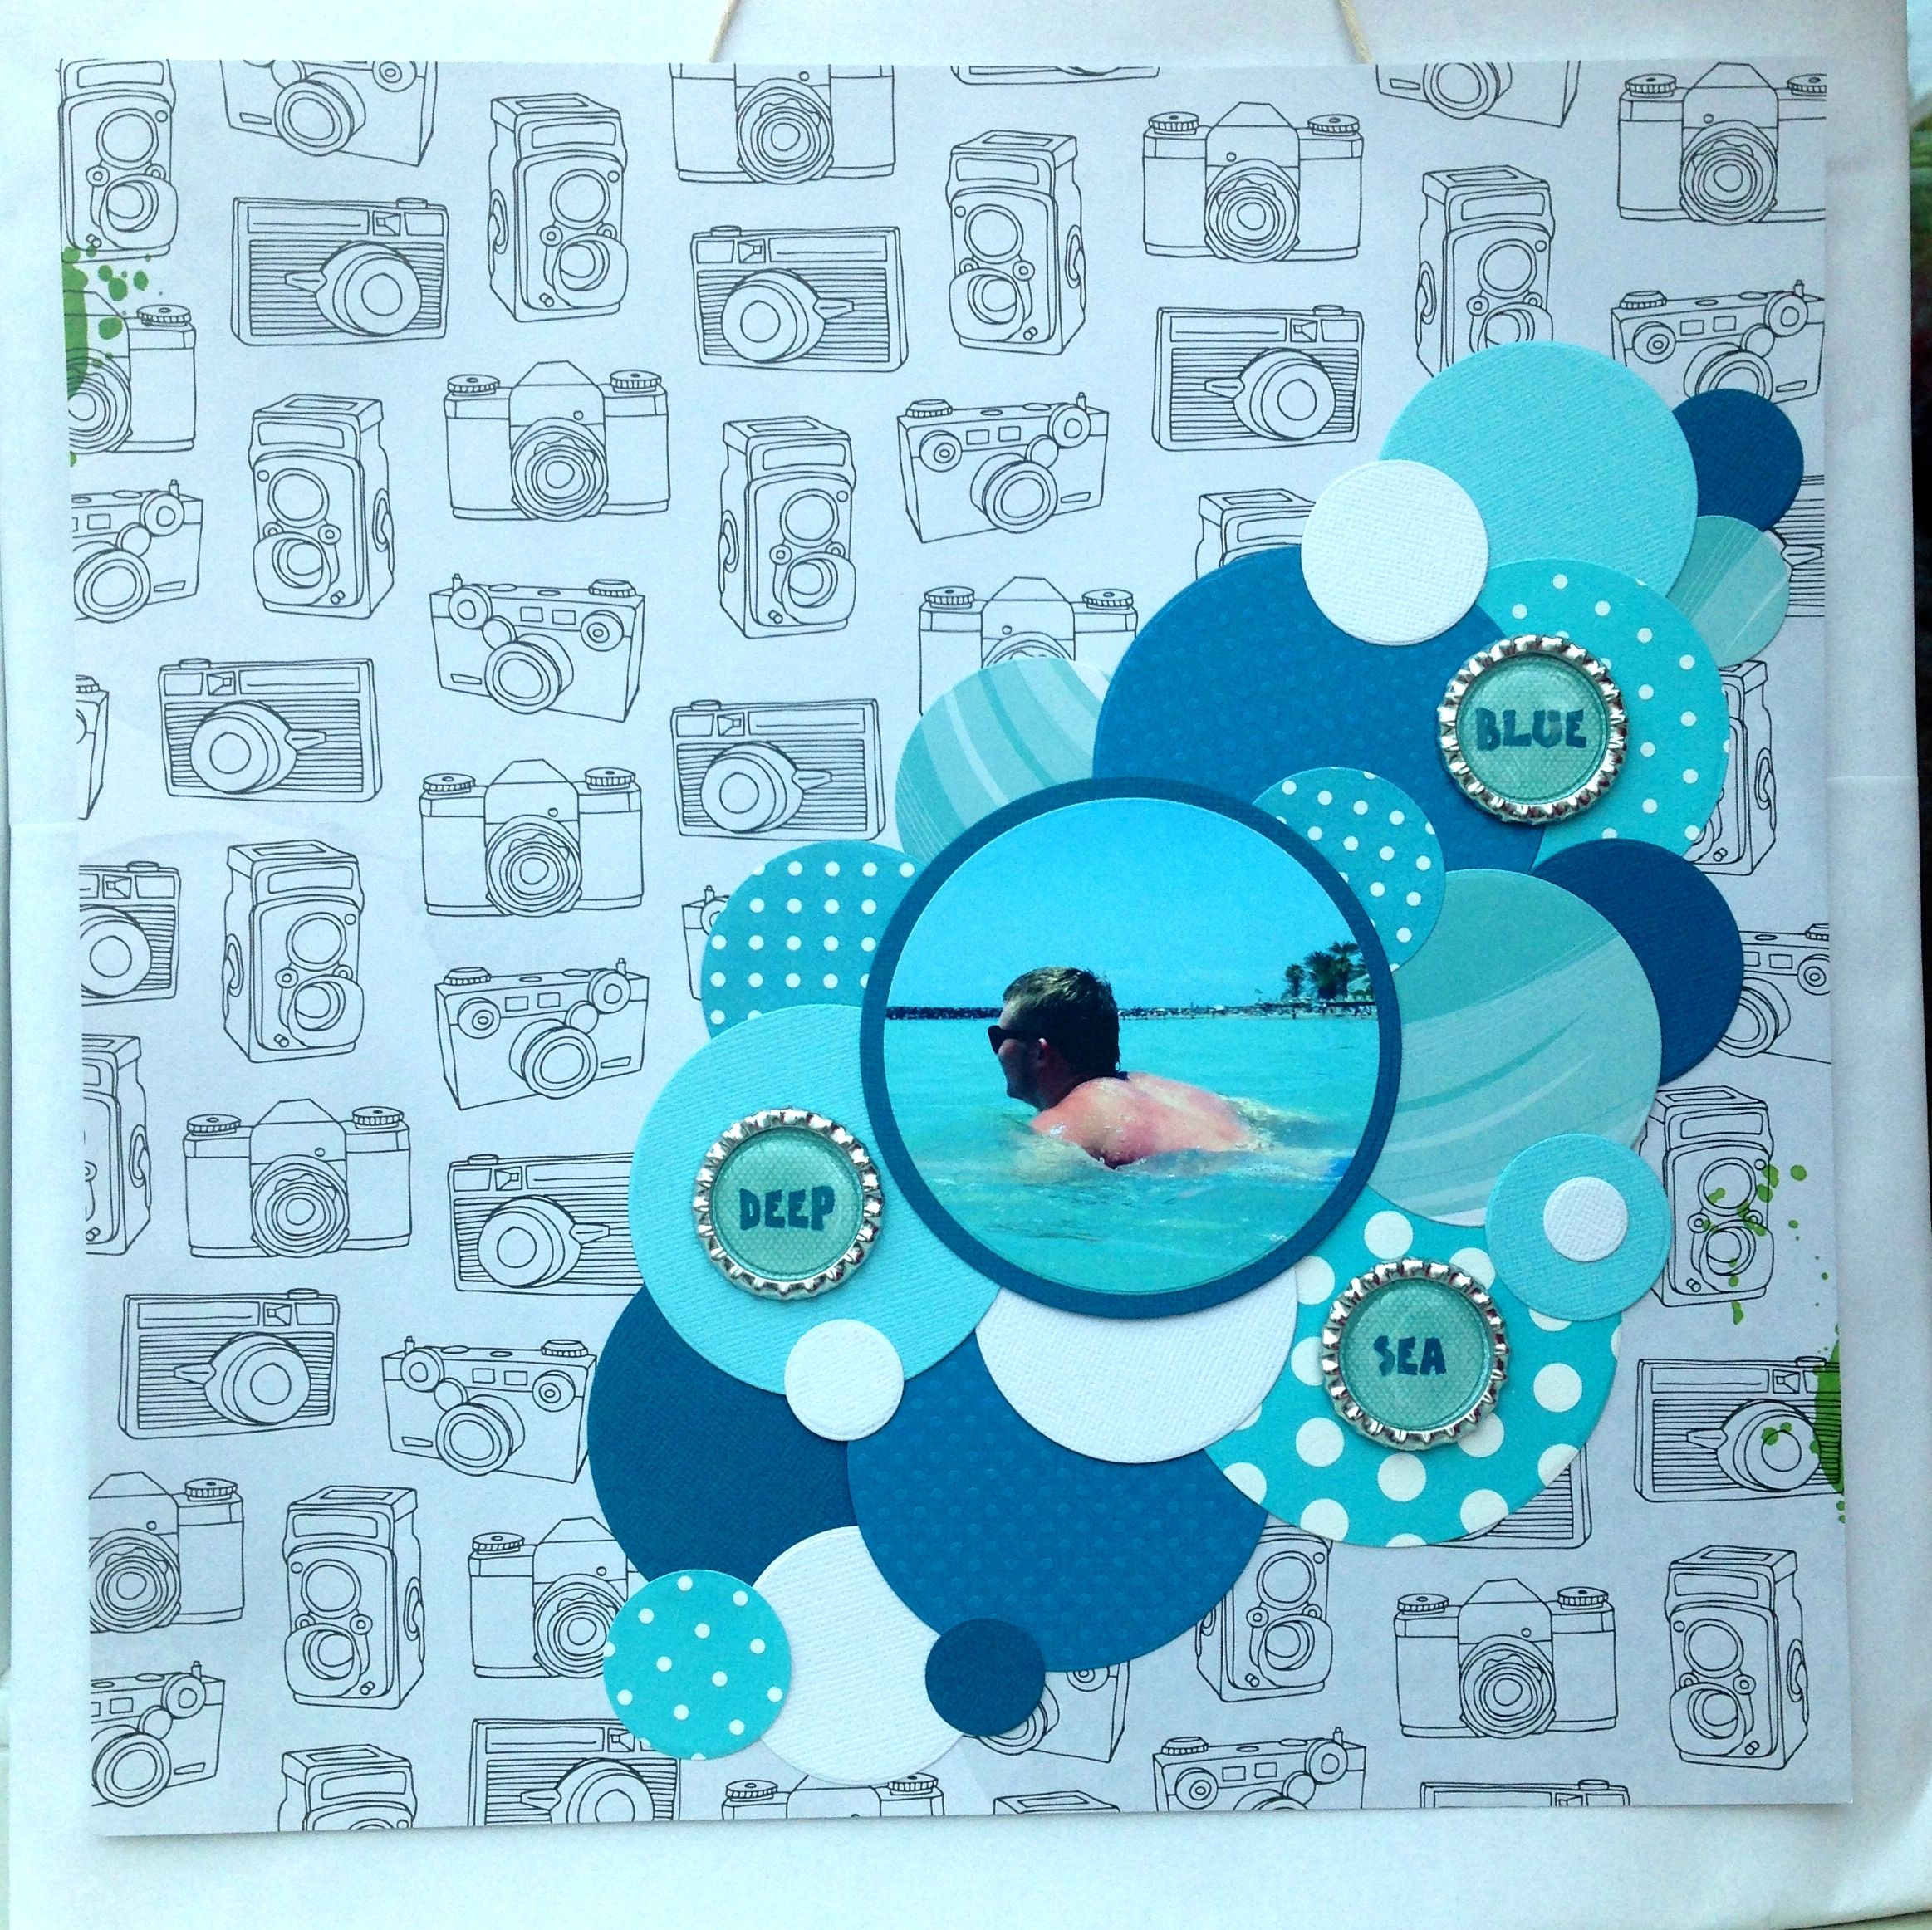 How to scrapbook magazine articles - Deep Blue Sea This Layout Was Featured In Issue At 82 Of Scrapbook Magazine The Article Was About Making Your Own Flair On This Layout I Used Bottle Tops